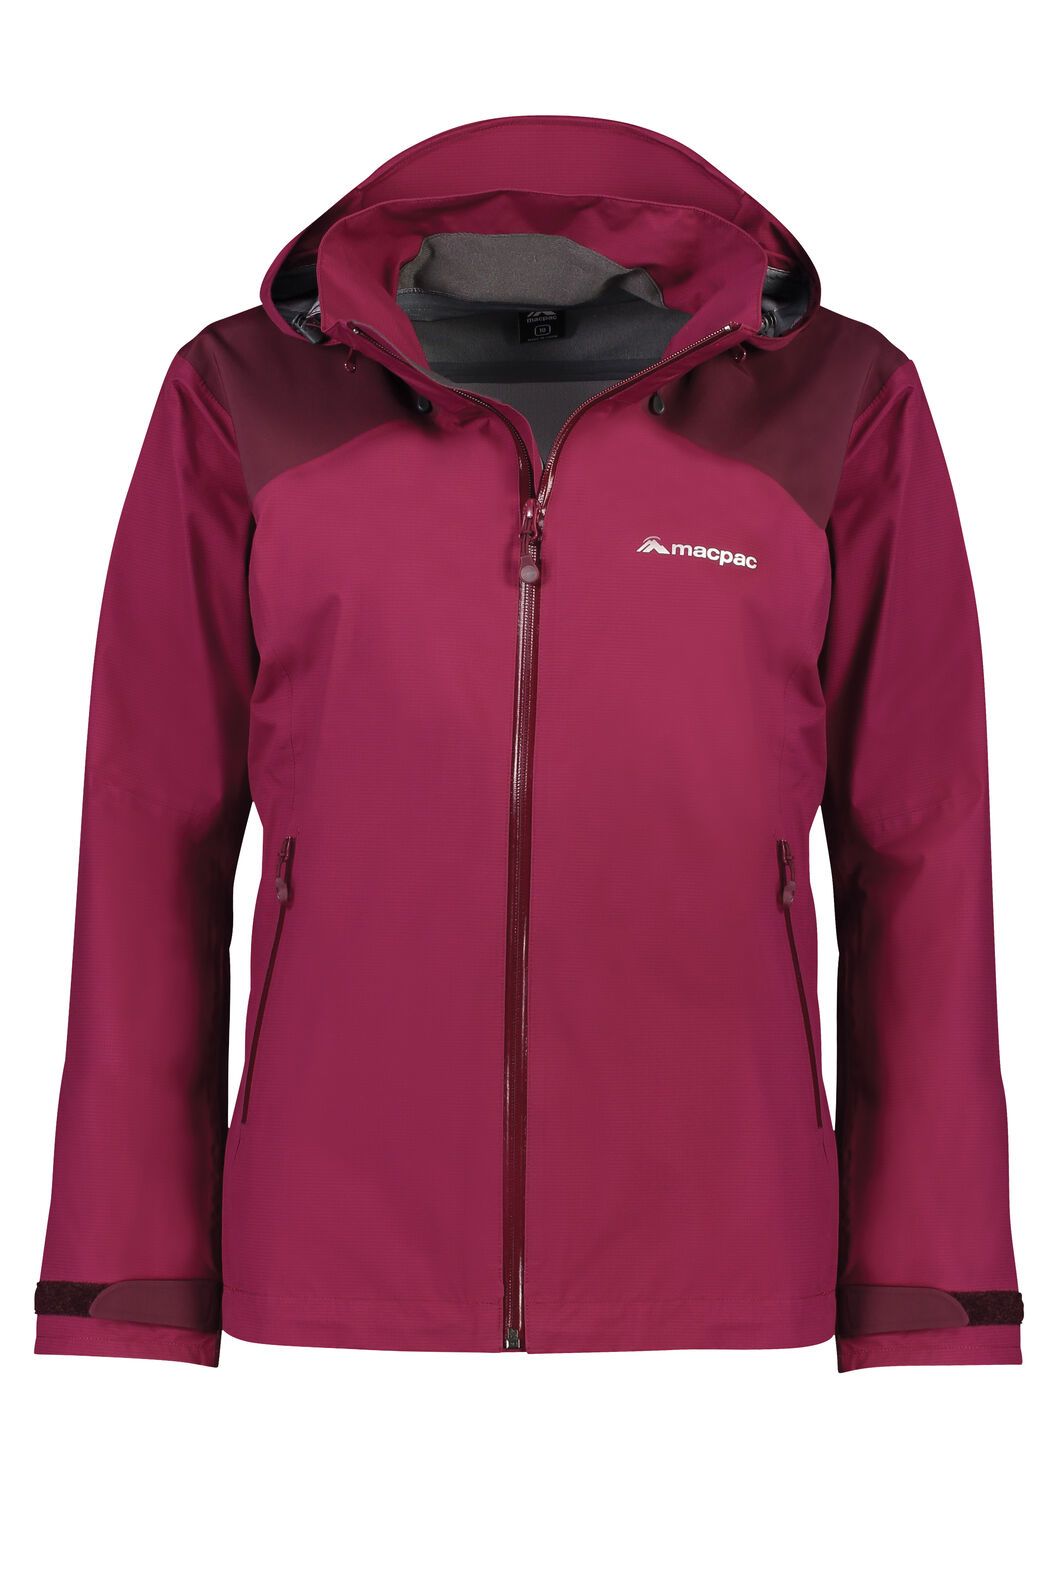 Macpac Traverse Pertex® Rain Jacket - Women's, Beet Red, hi-res